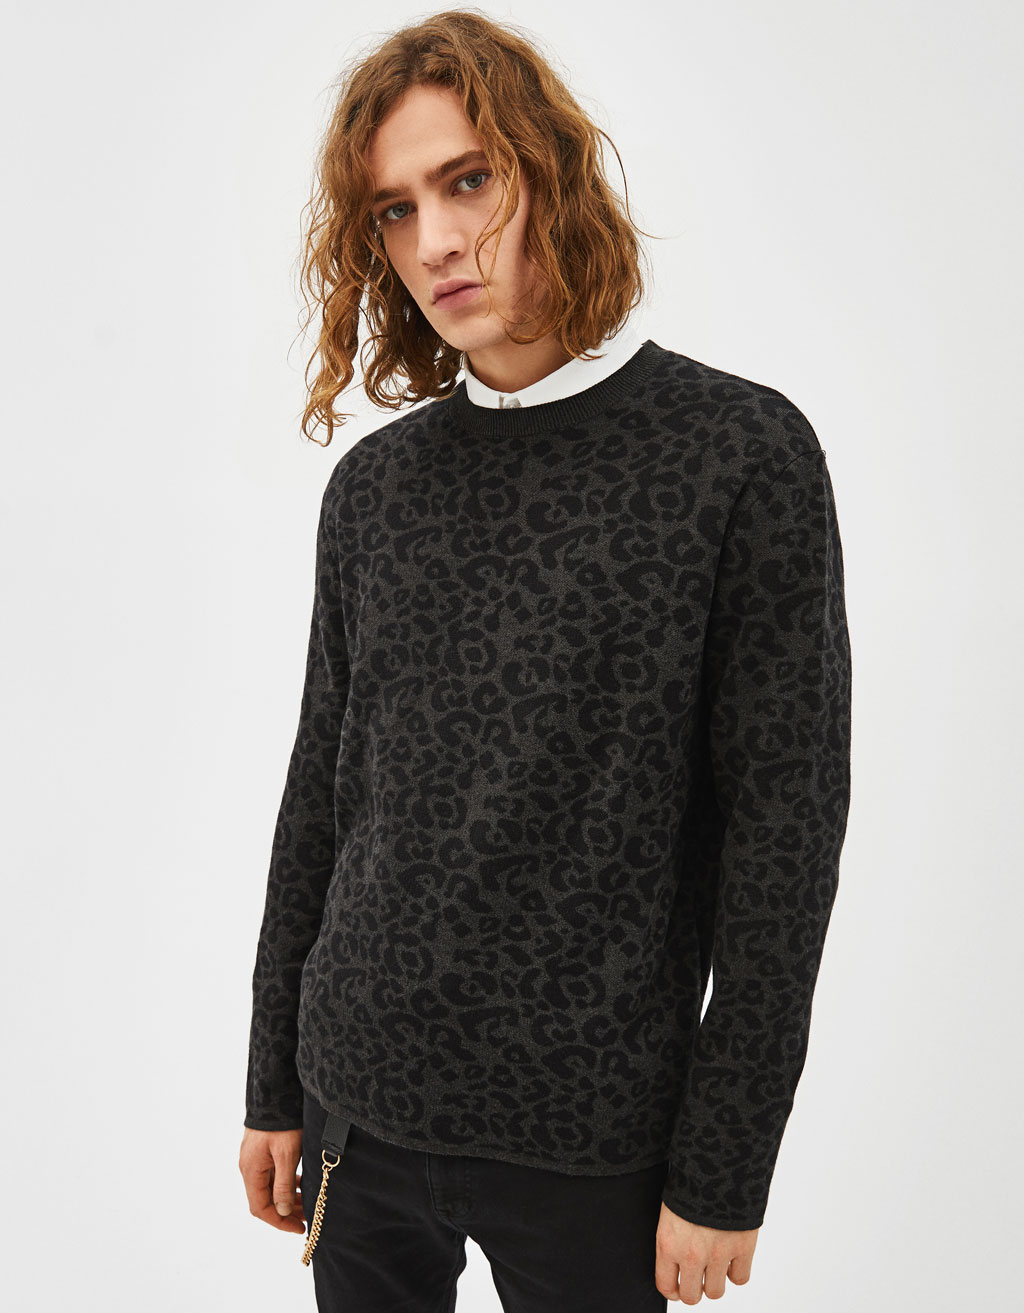 Sweater com estampado leopardo